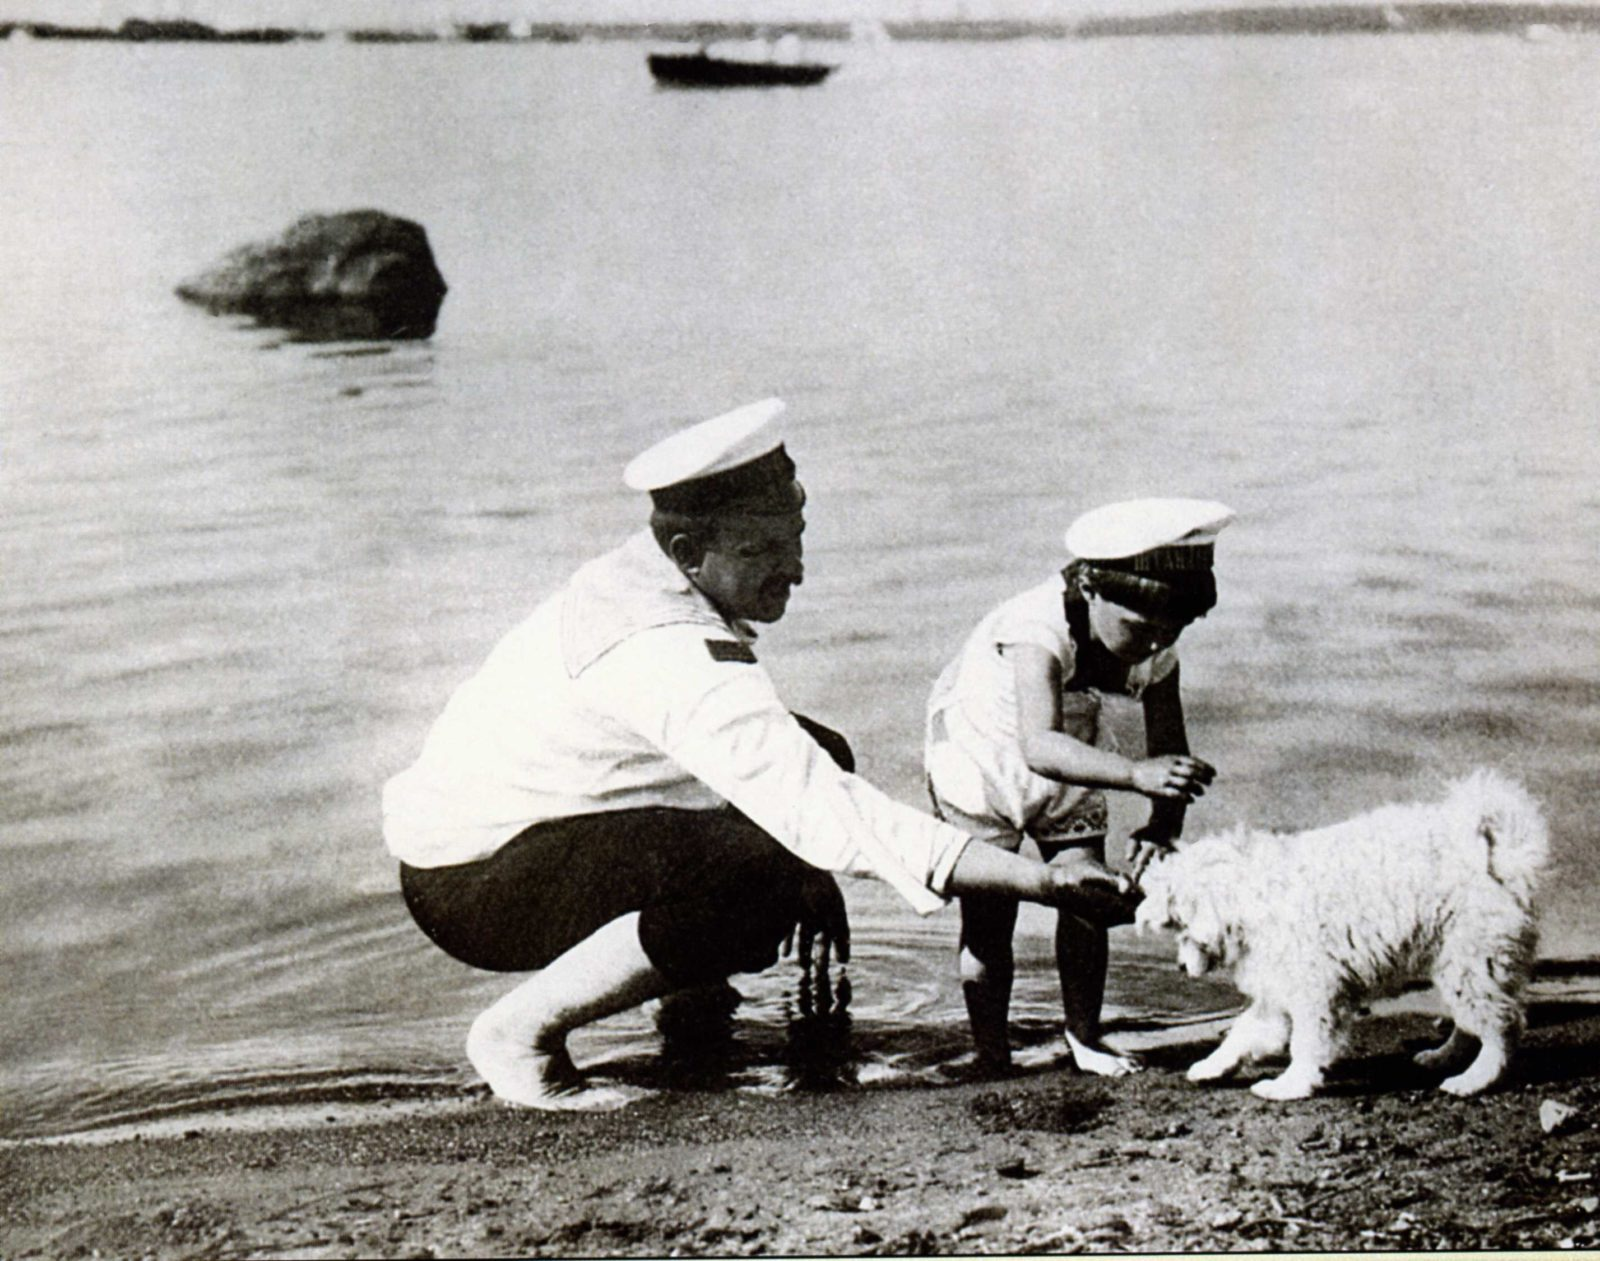 Tsesarevich Alexei Nikolayevich plays with a dog on a walk.